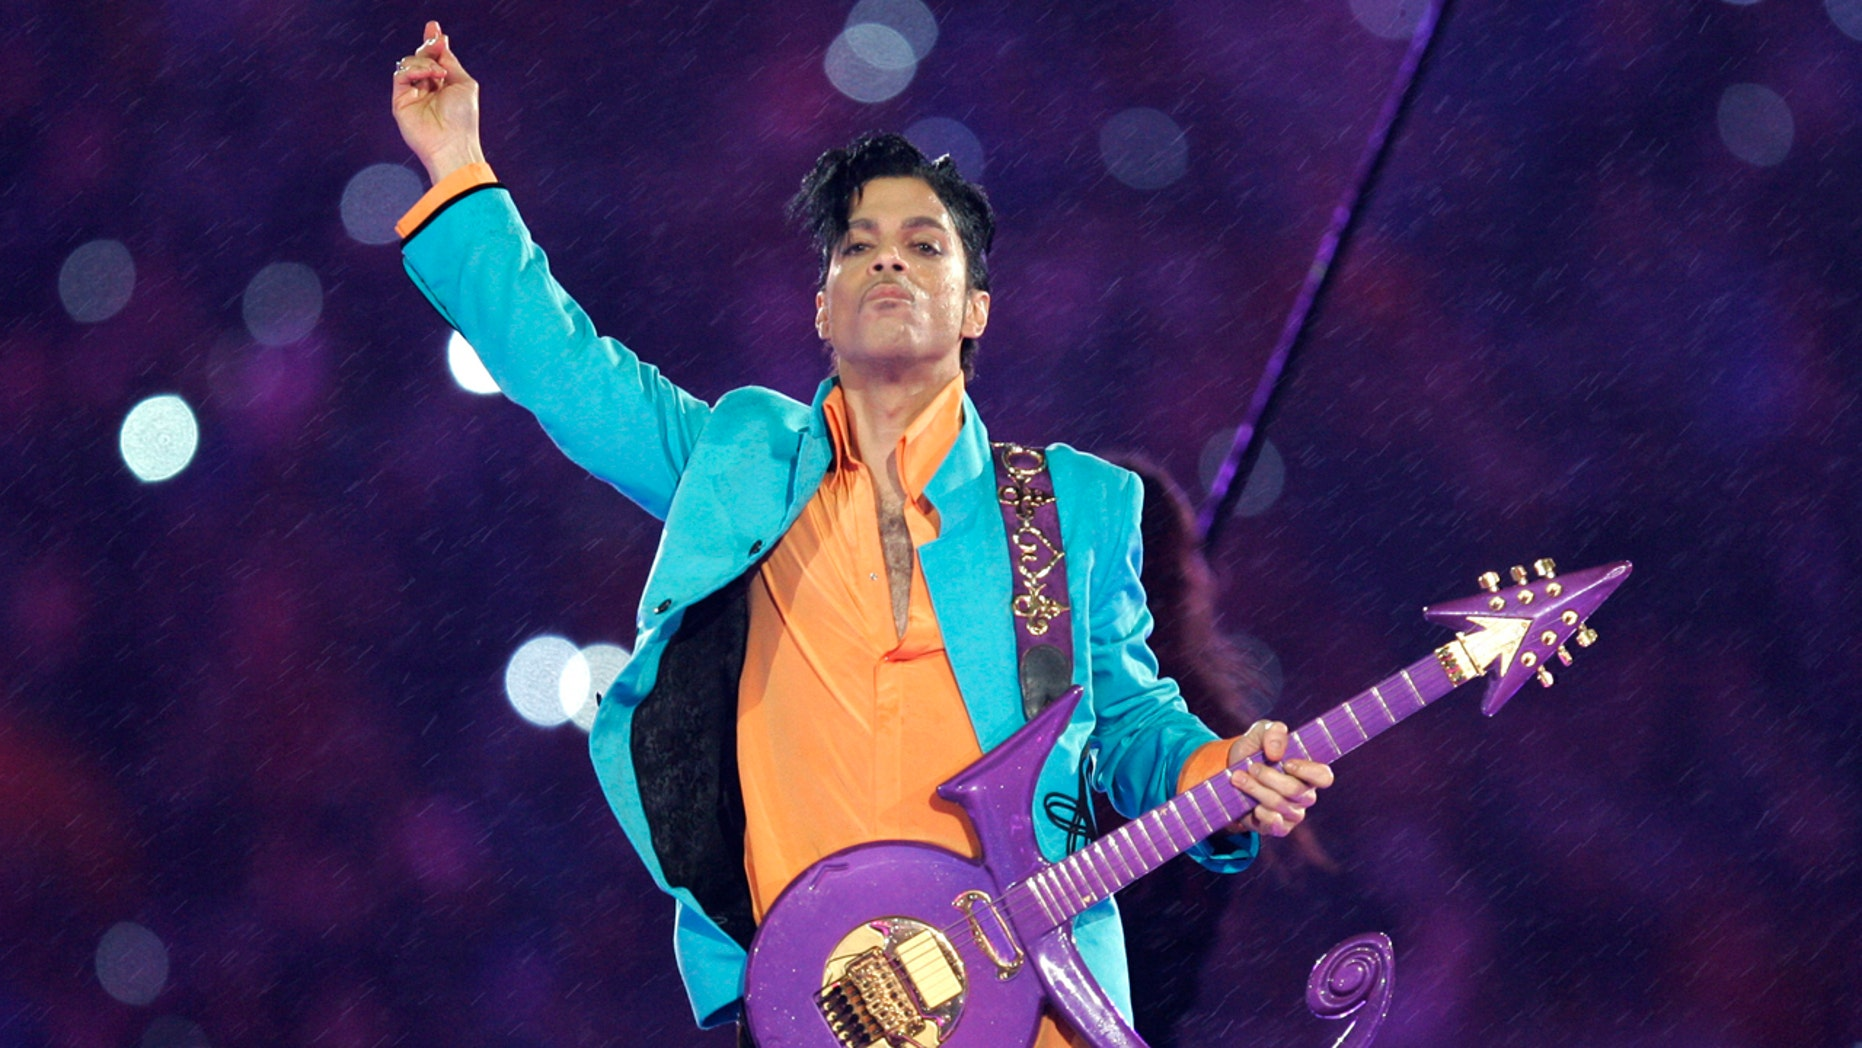 FILE - In this Feb. 4, 2007, file photo, Prince performs during the halftime show at the Super Bowl XLI football game at Dolphin Stadium in Miami. Carver County prosecutors have agreed to provide Prince's siblings with documents connected to their investigation into his death. John Goetz, an attorney for Prince's siblings, says he expects prosecutors will provide the medical examiner's autopsy investigation this week and the remaining investigative files next week. (AP Photo/Chris O'Meara, File)